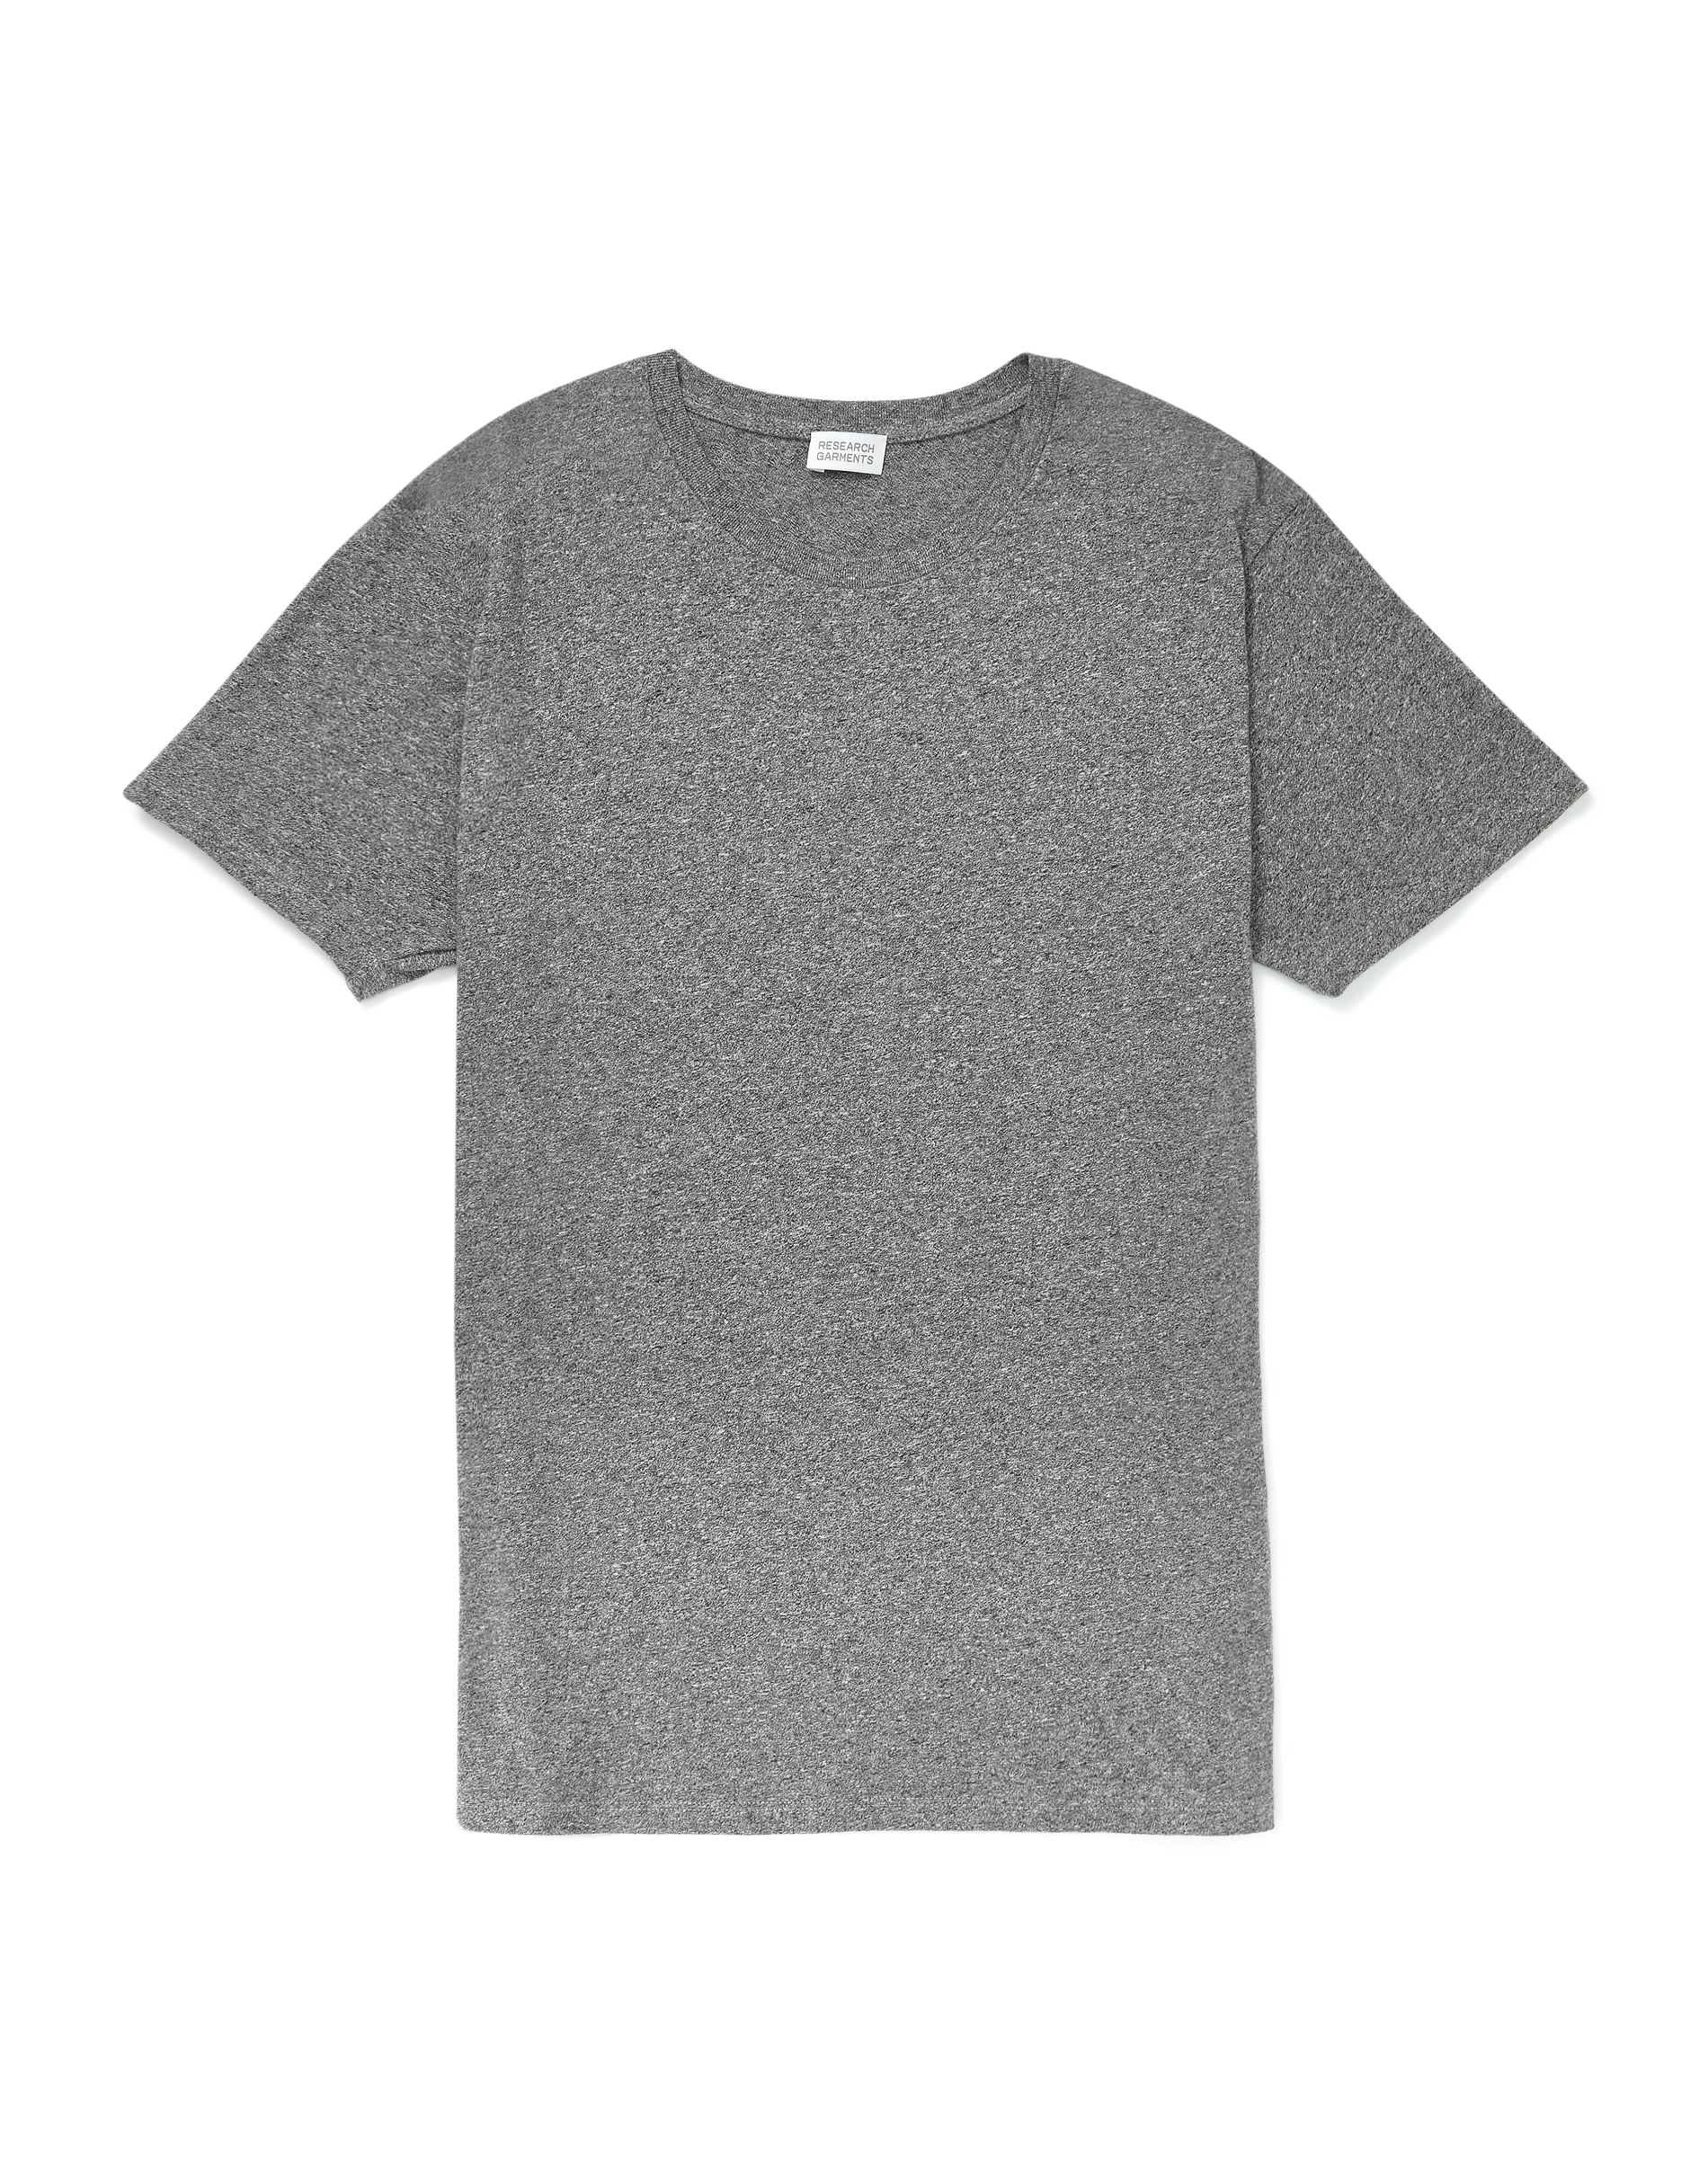 Research Garments Charcoal Marl The Perfect Textured Tee